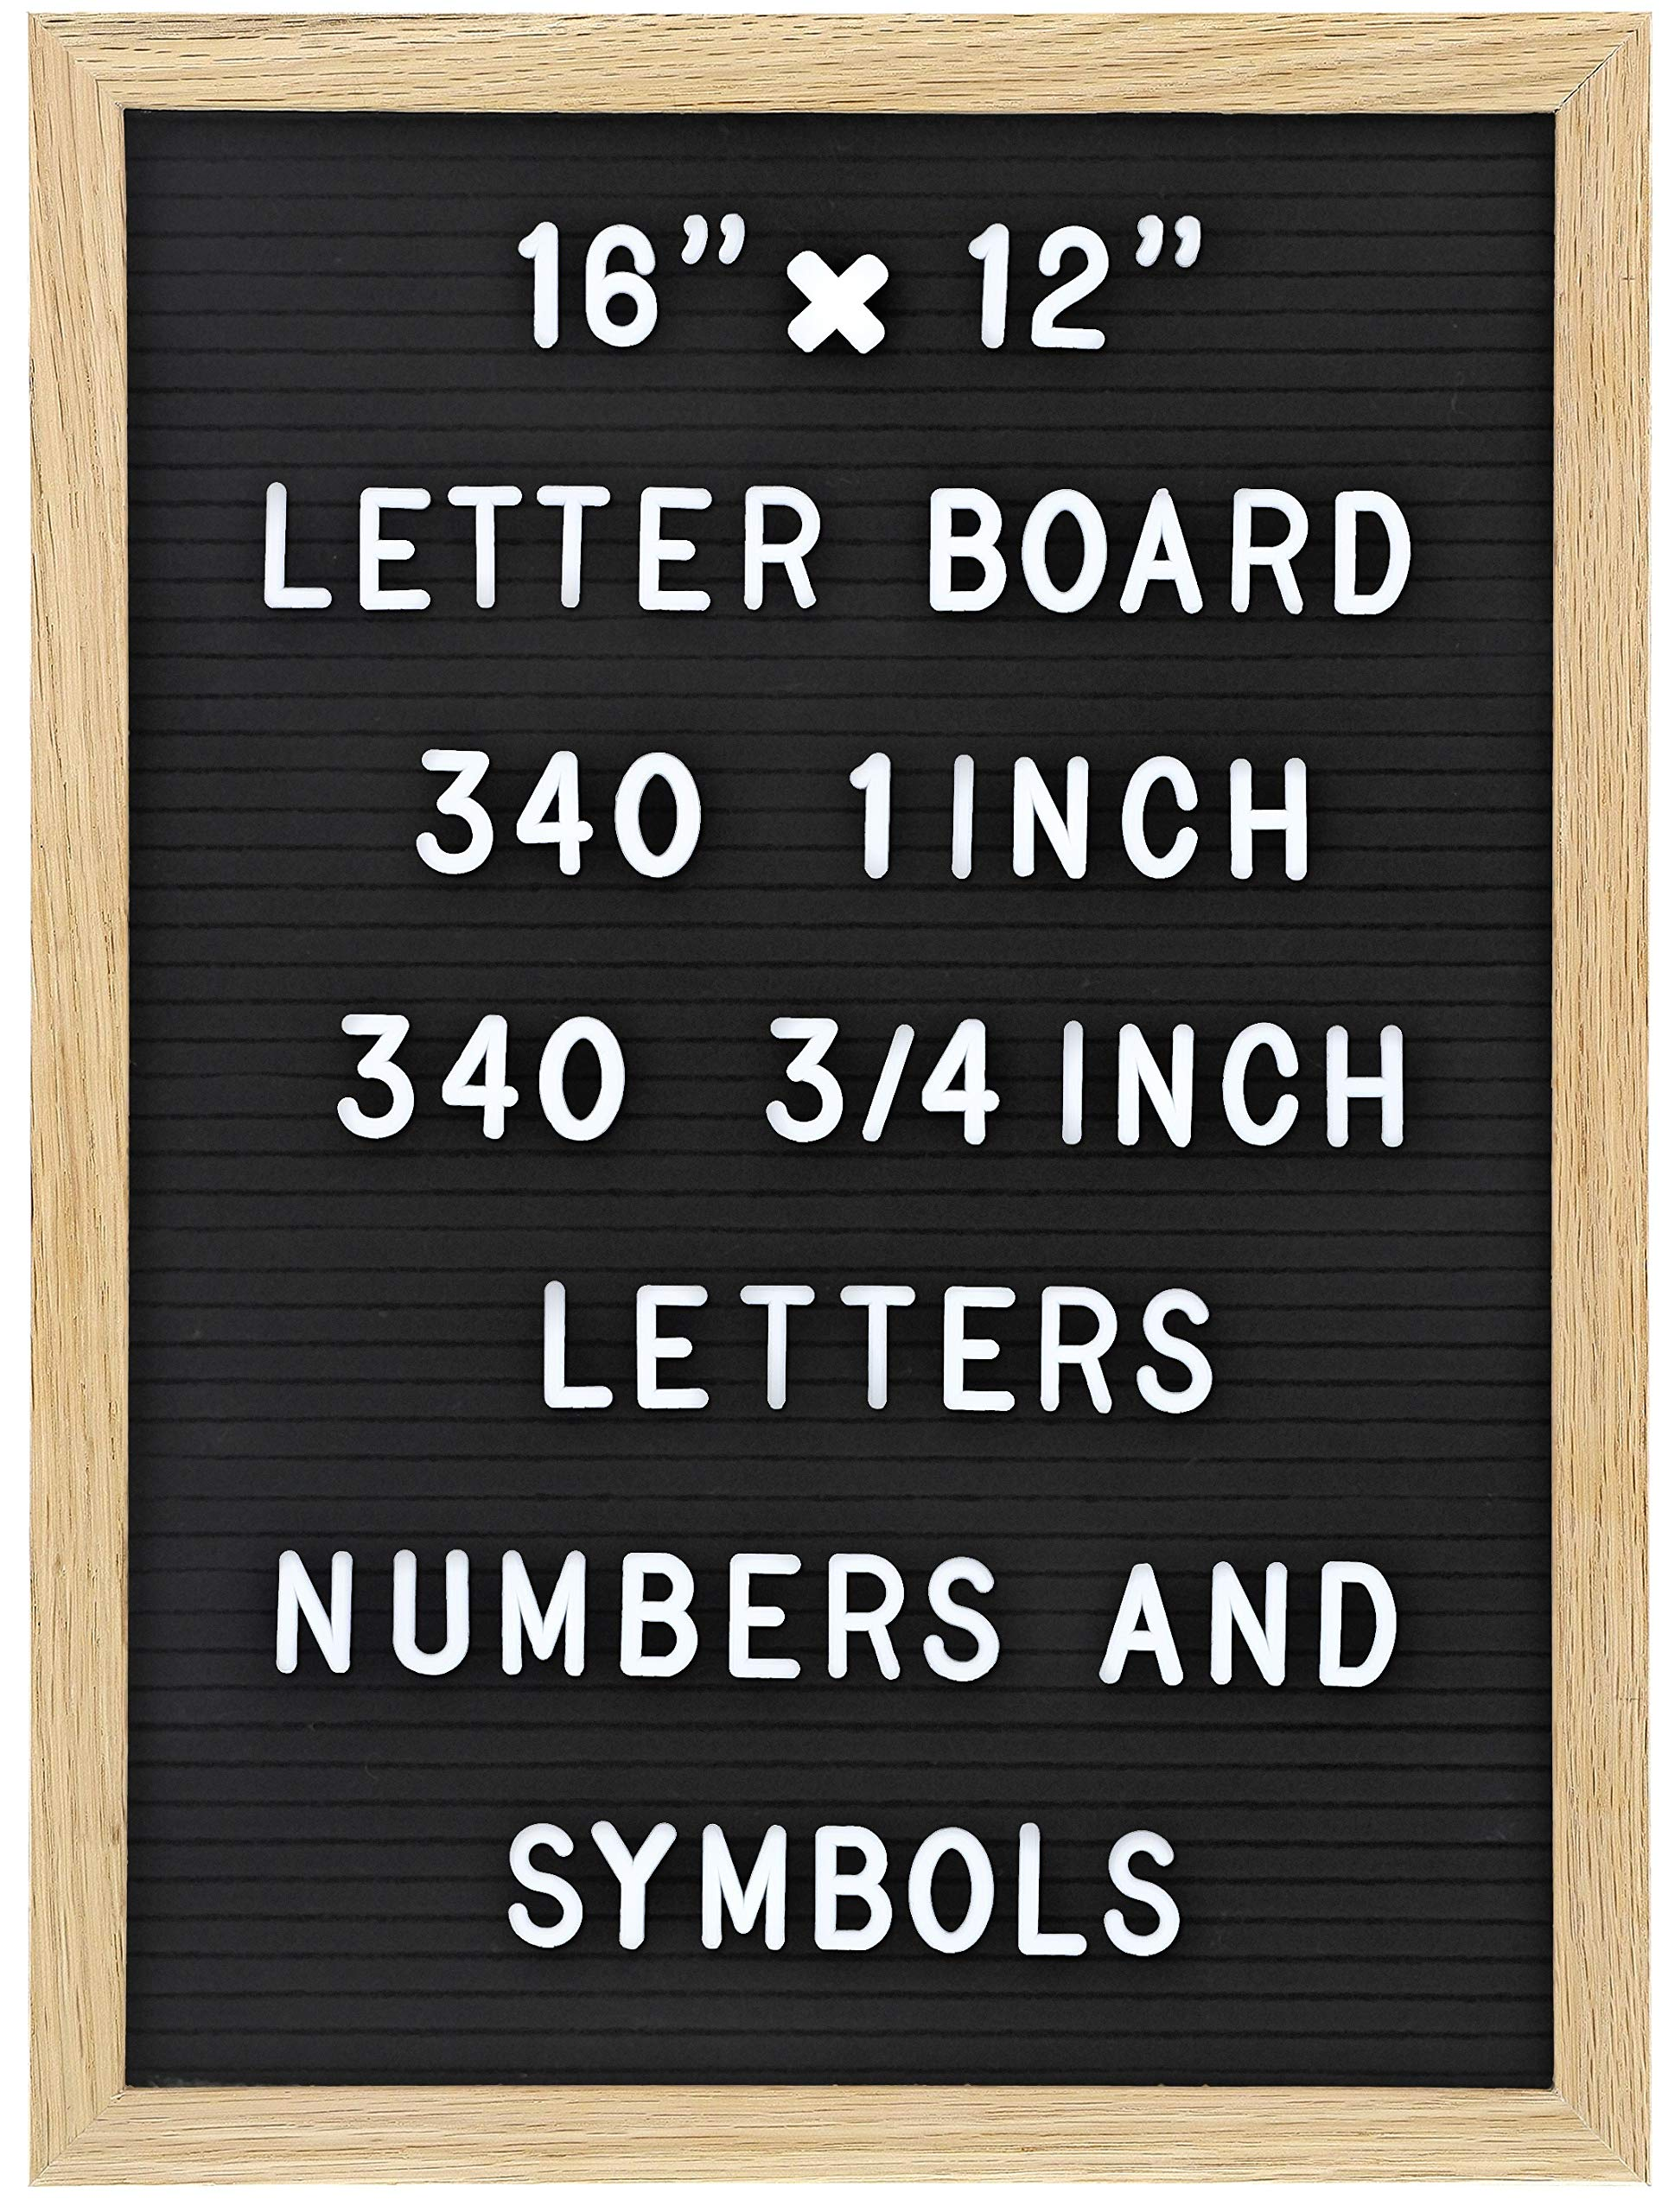 Felt Letter Board with 680 Letters, Numbers & Symbols 16 x 12 inch :: Changeable Letter Board for Quotes, Messages, Displays, Words & More :: Hangs Or Stands Alone:: Includes 2 Storage Bags (Black) by TRENDARTI